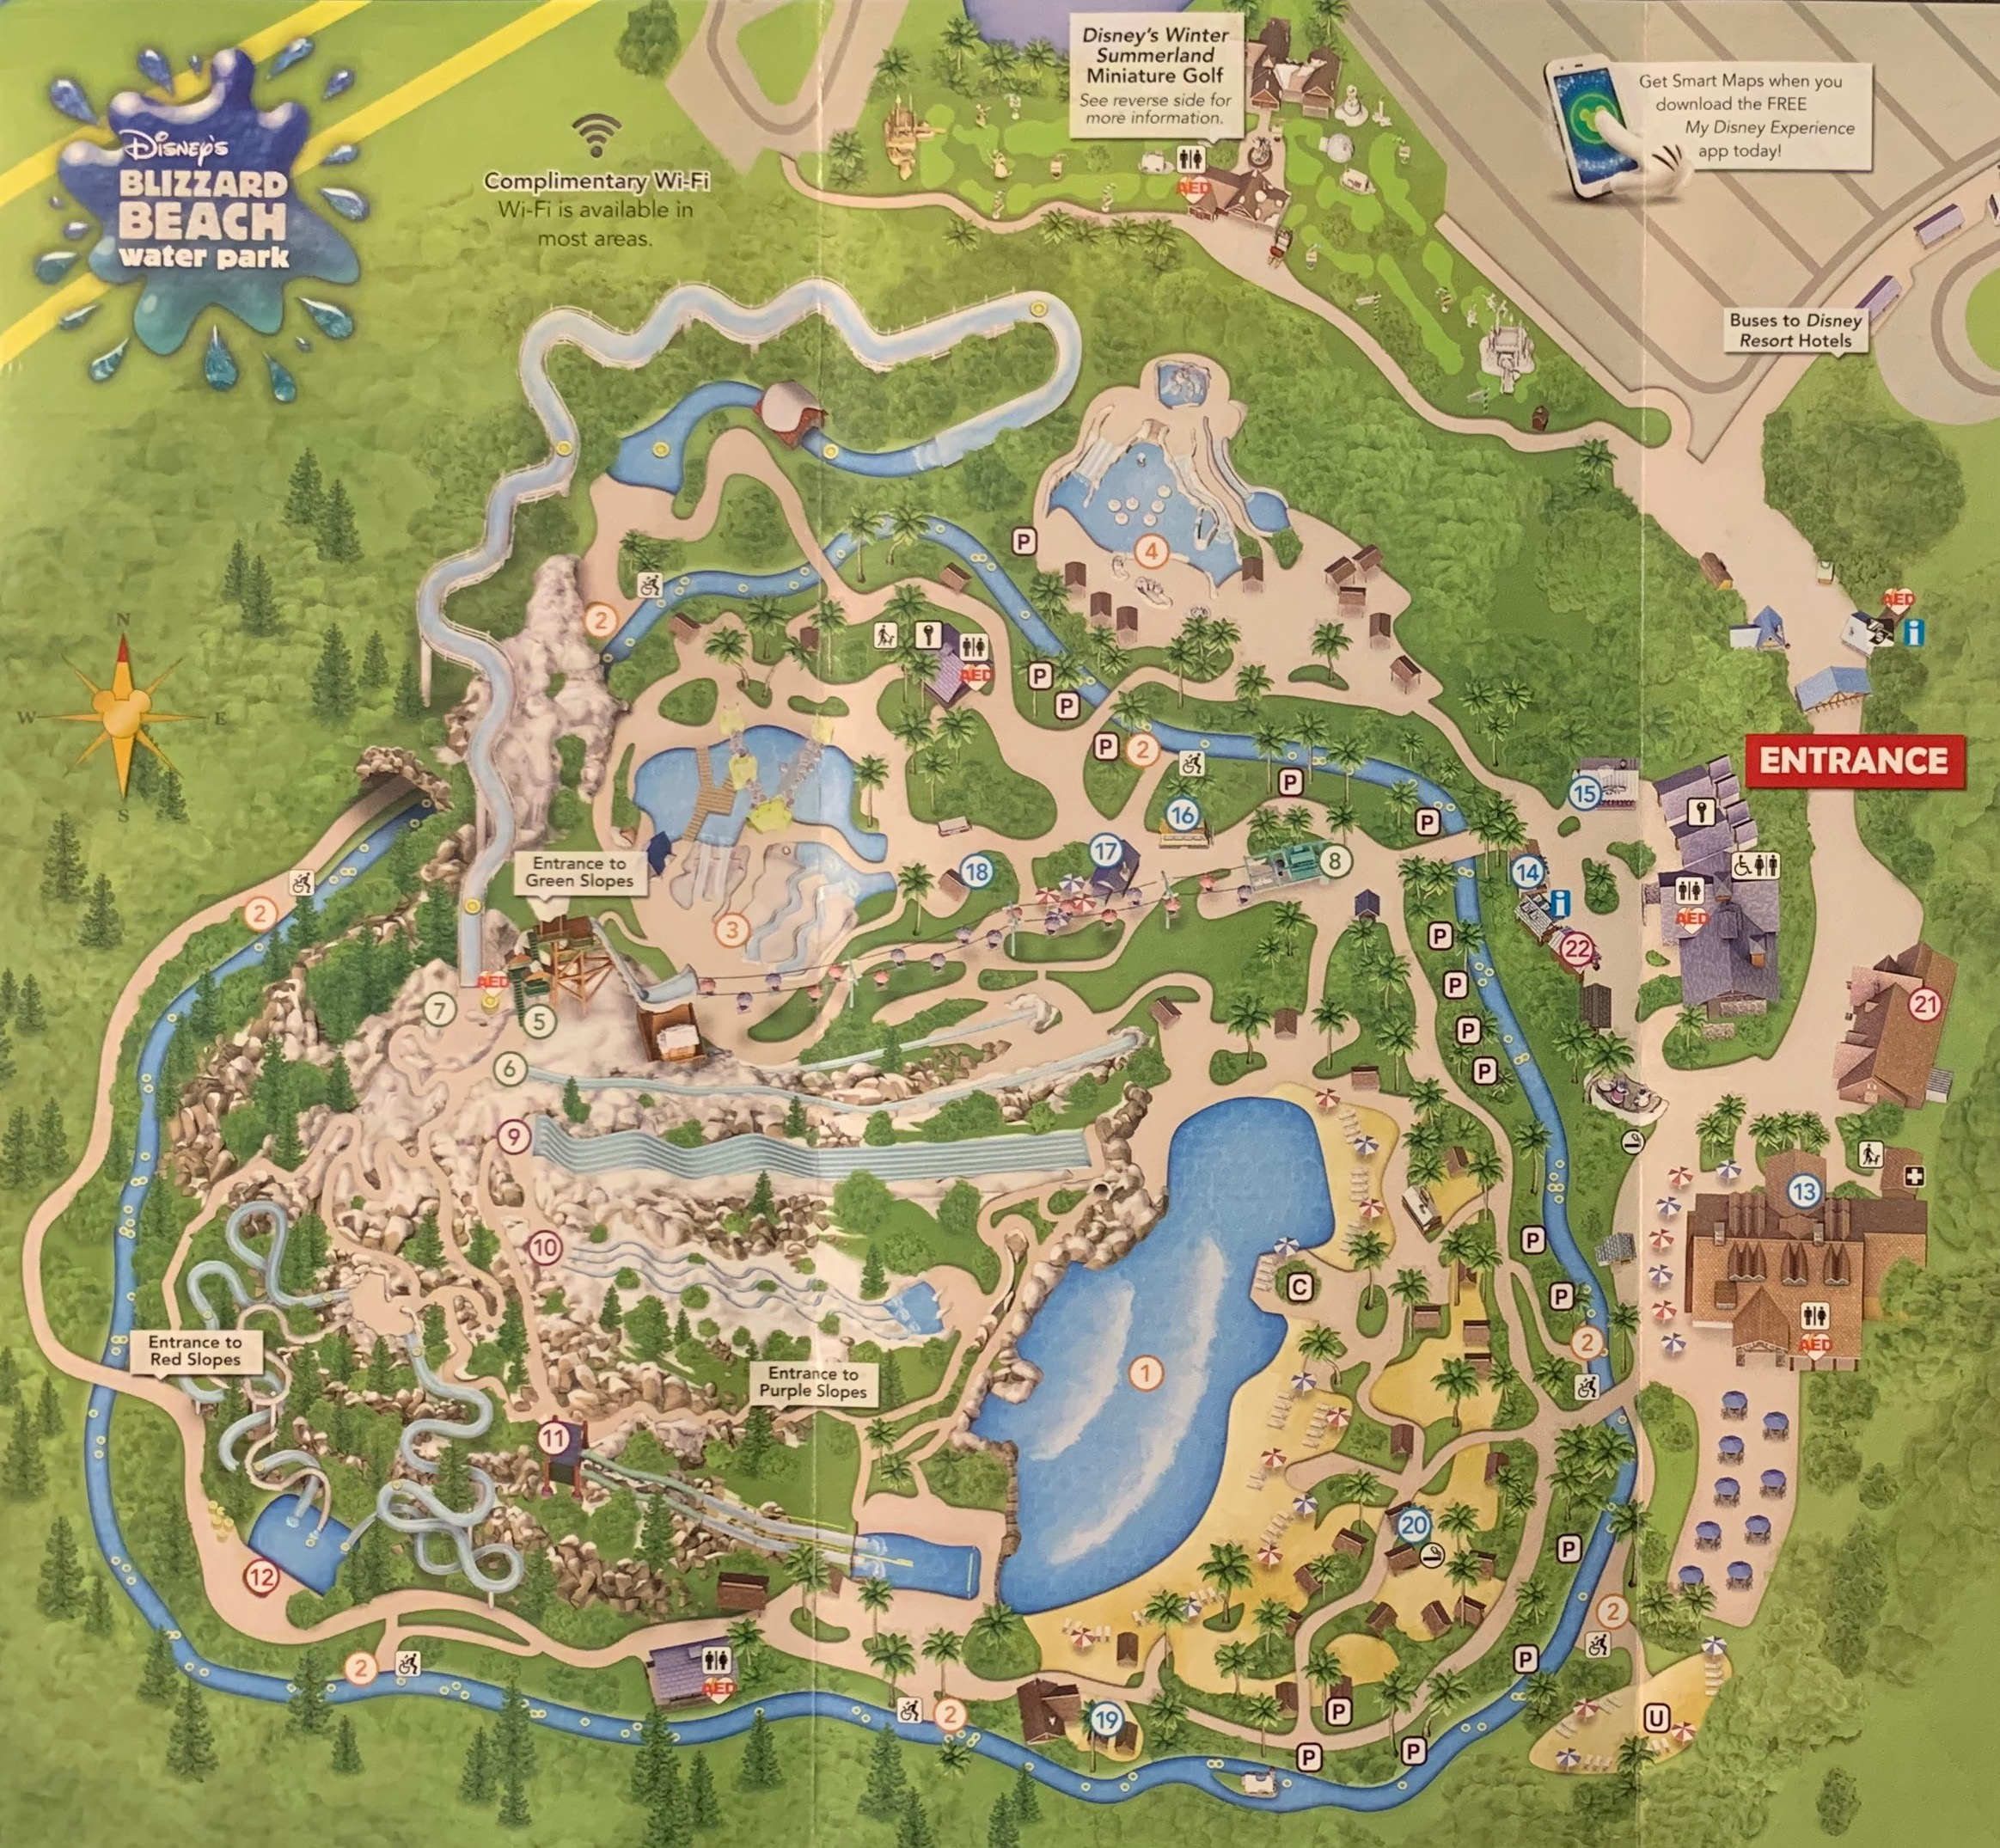 Complete Guide to Disney's Blizzard Beach Water Park (2019